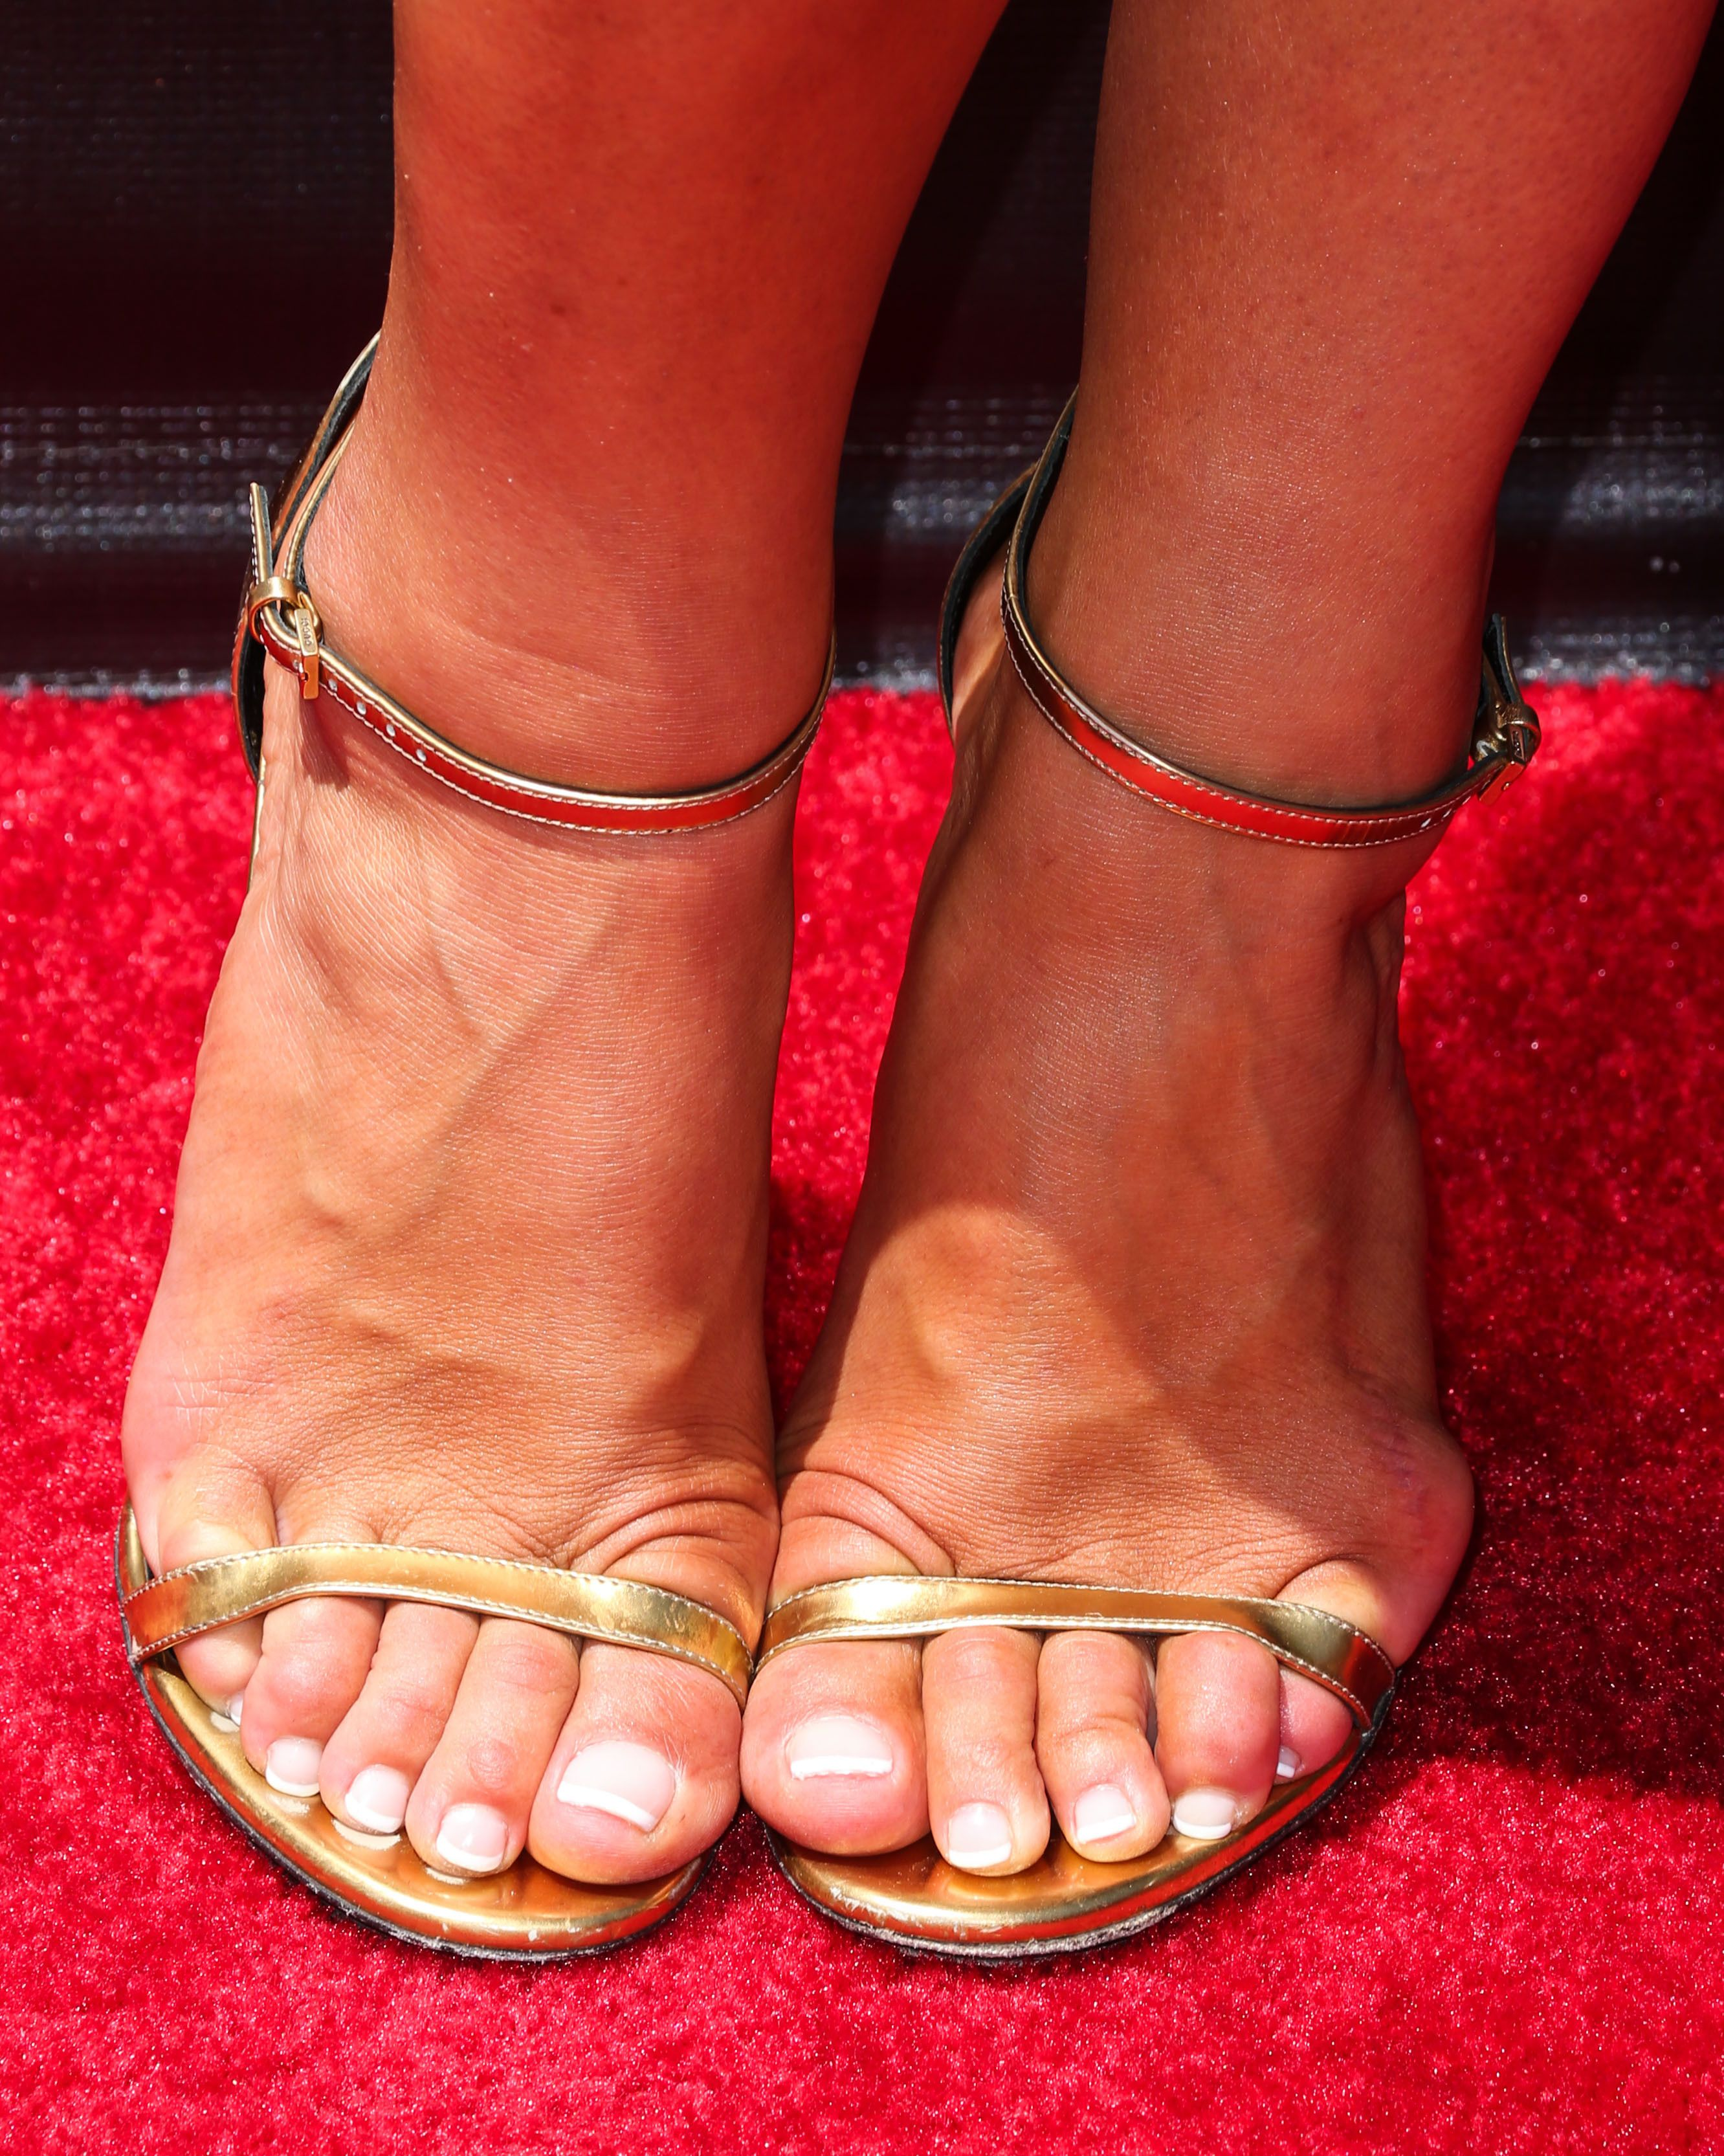 Feet Charissa Thompson nudes (24 pics), Hot